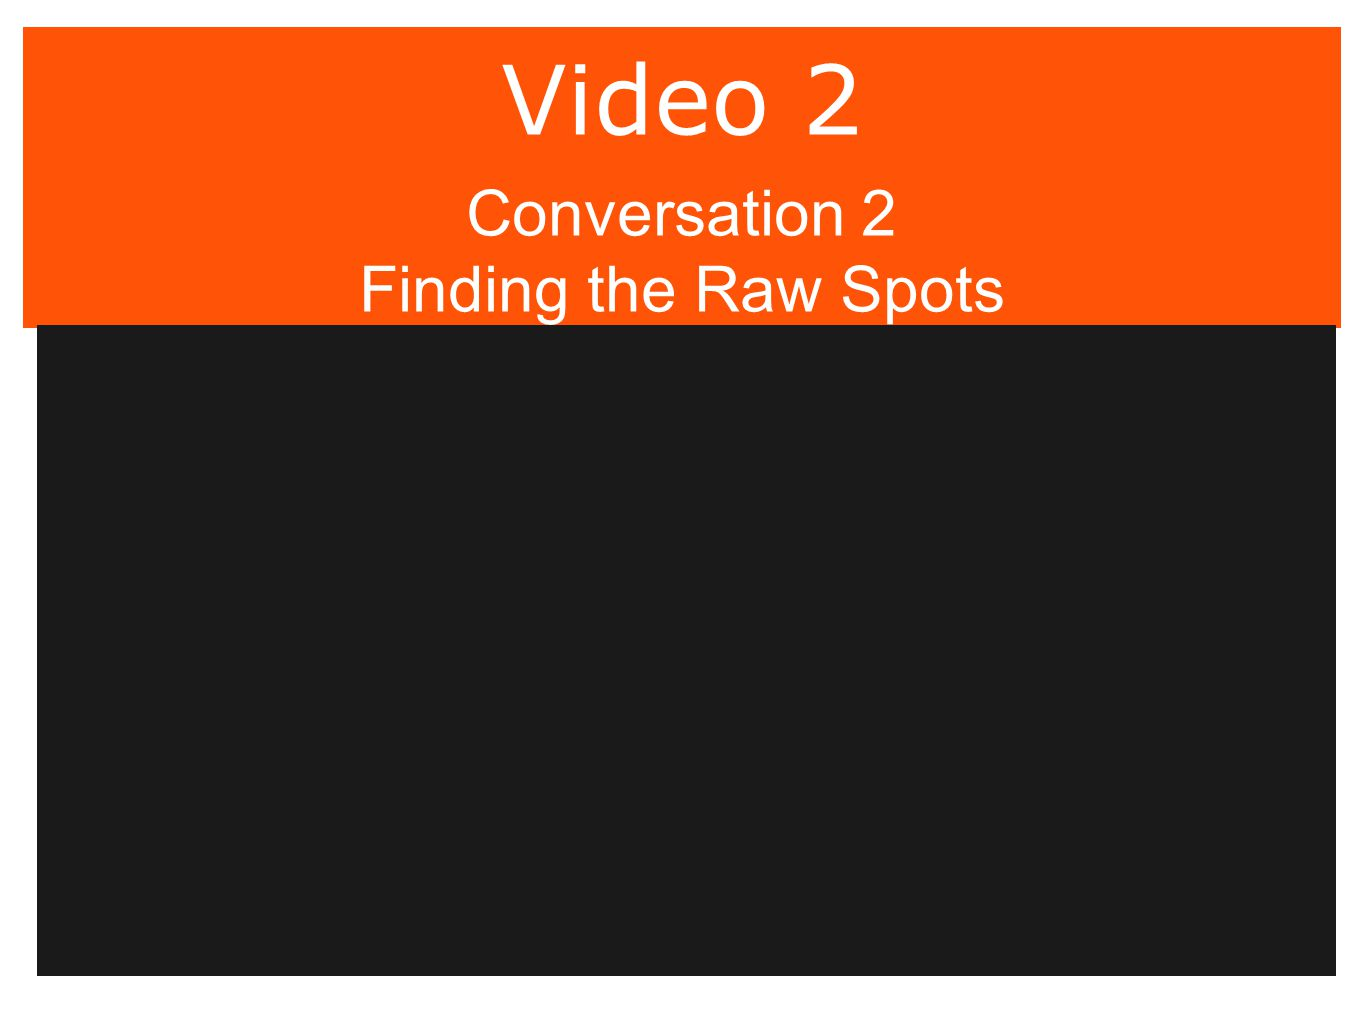 Video 2 Conversation 2 Finding the Raw Spots